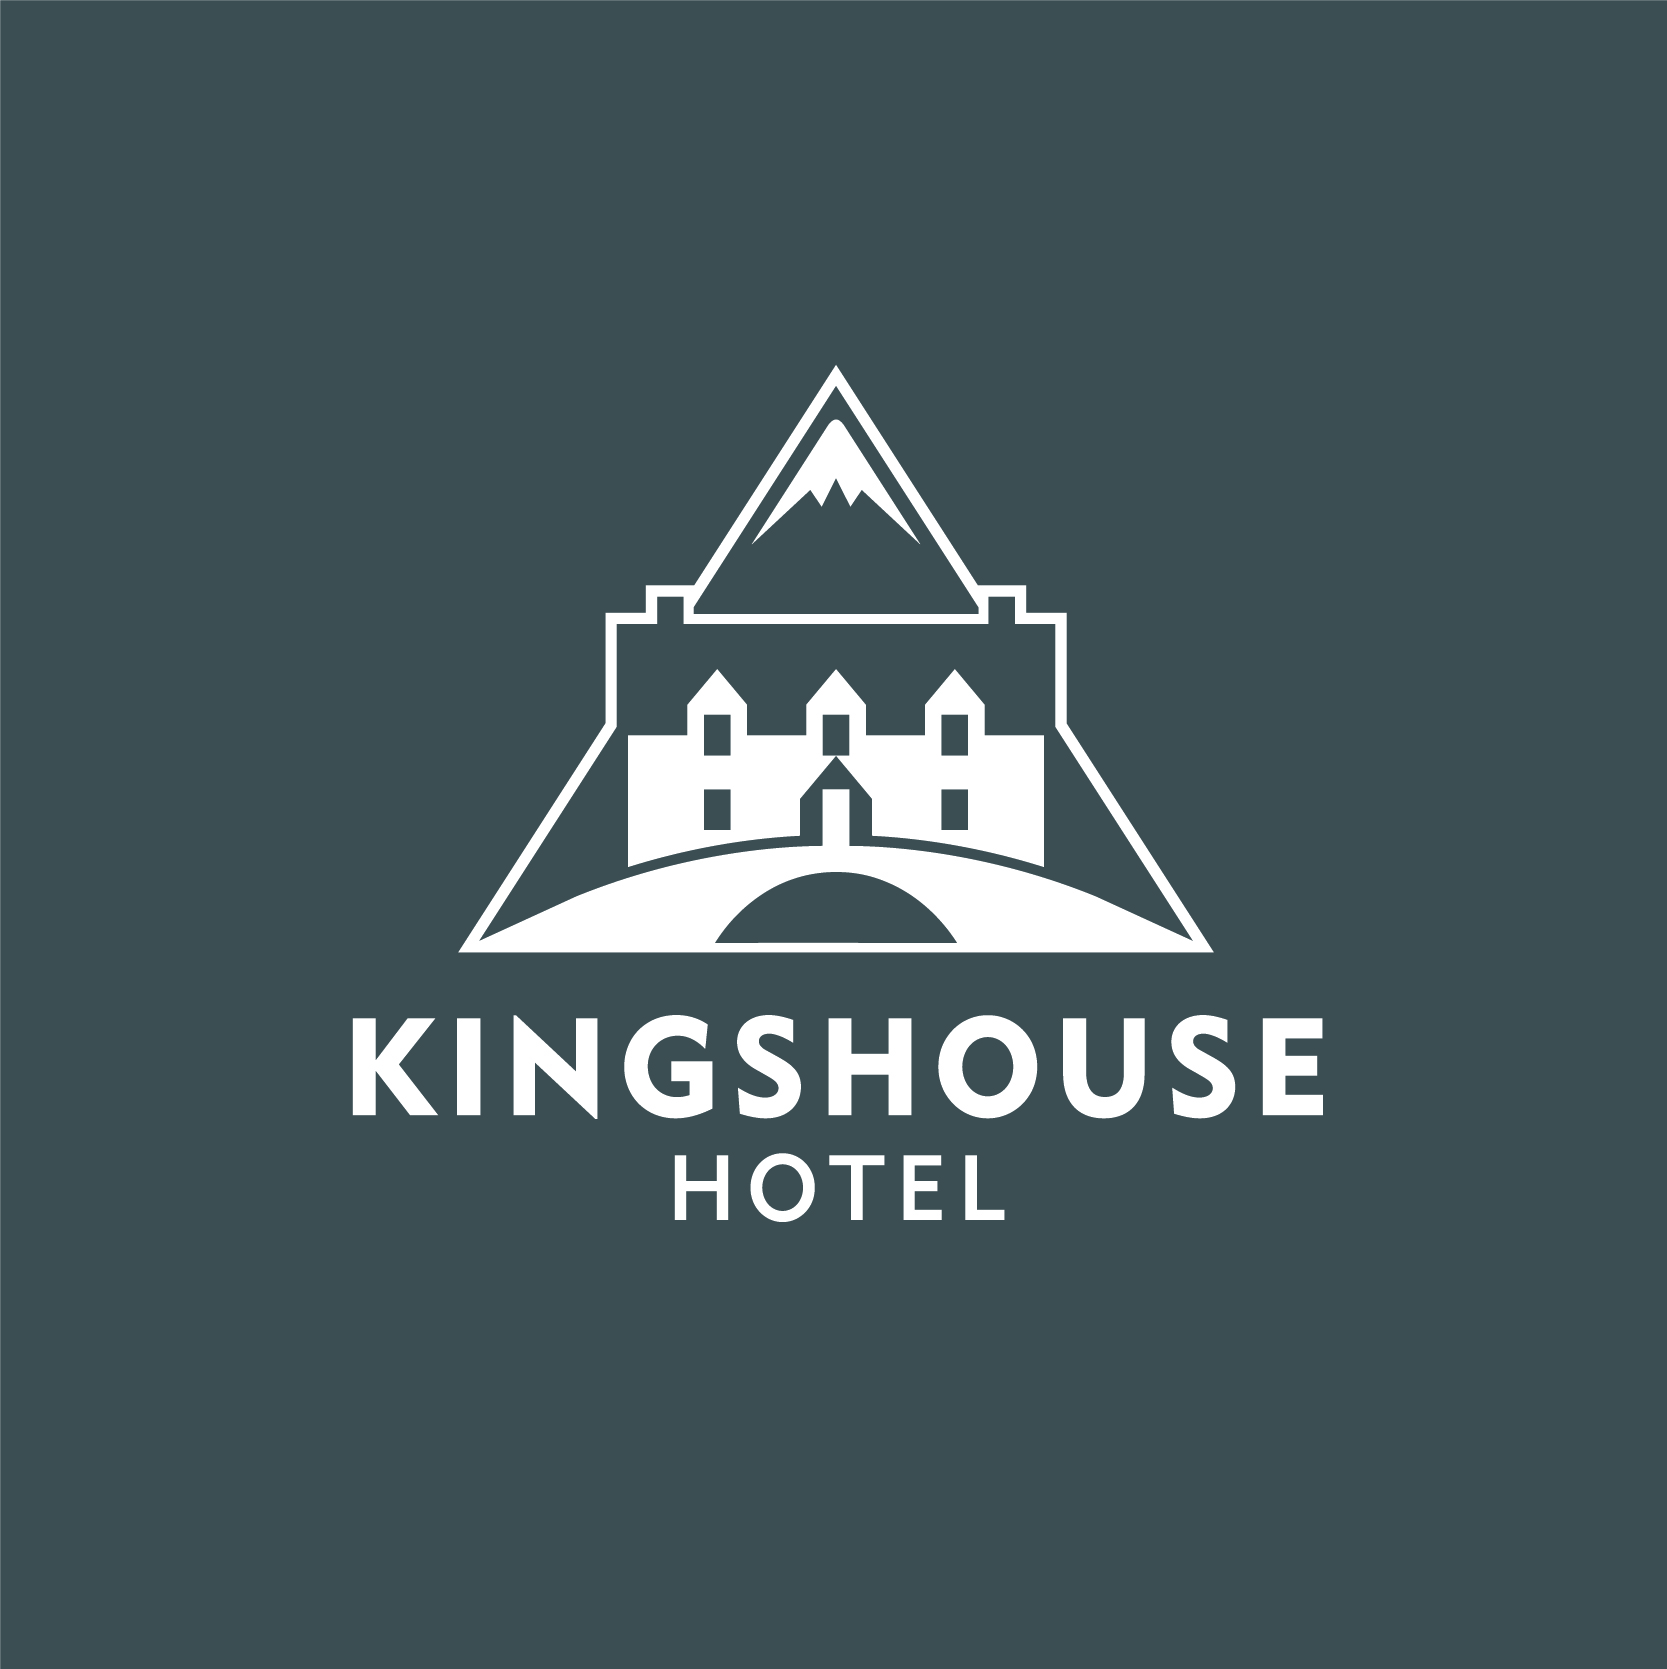 Kingshouse Hotel and Bunkhouse